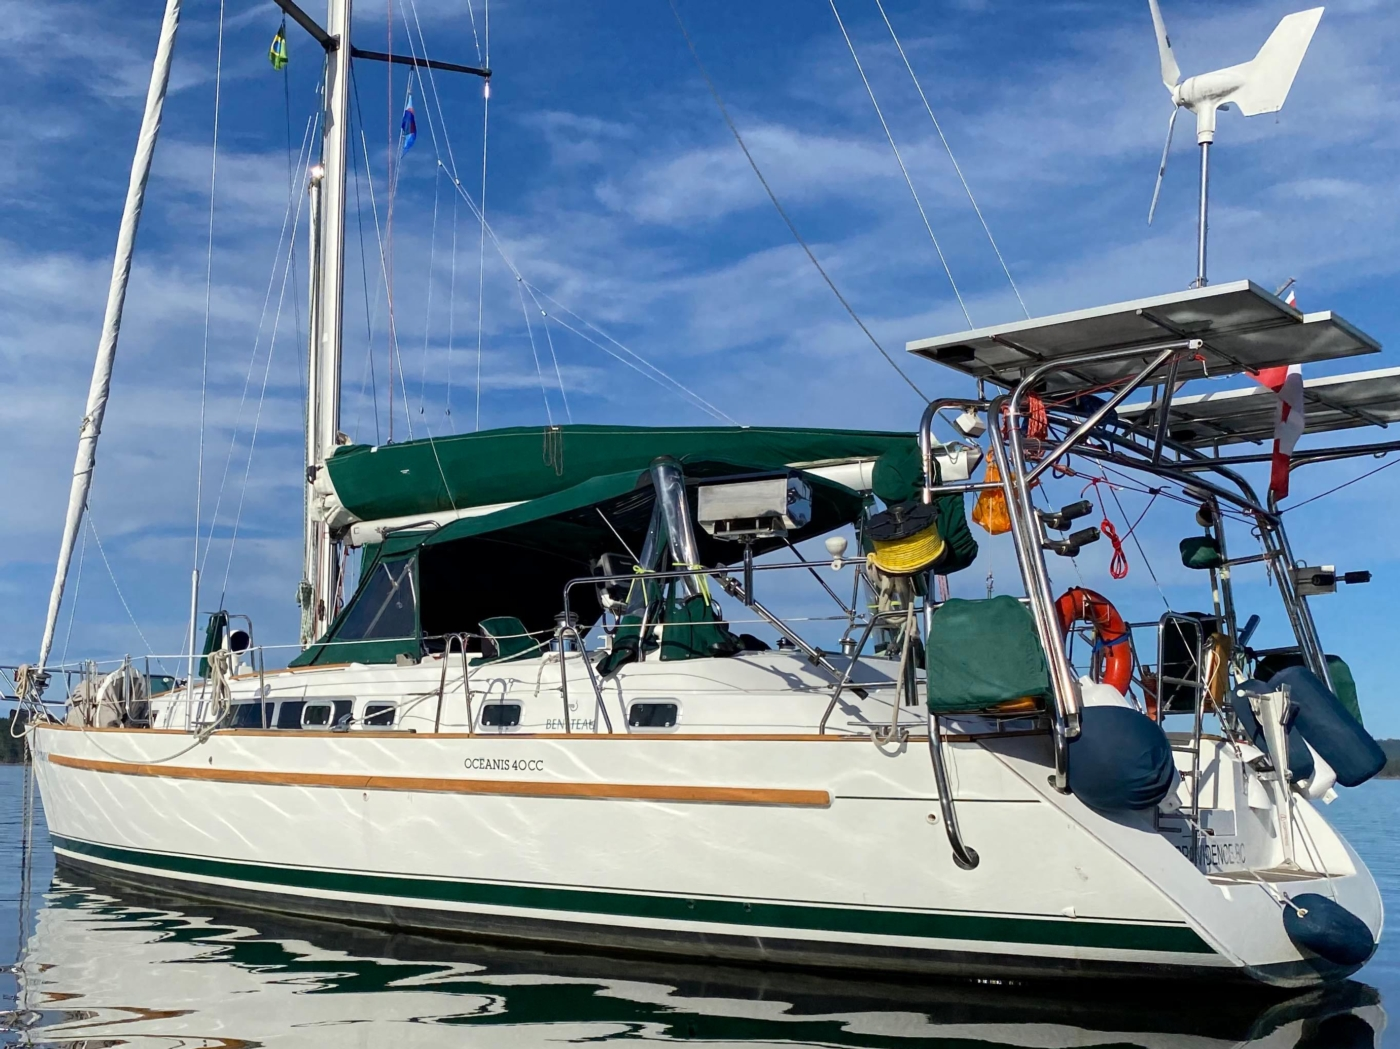 41 feet Beneteau Oceanis 40 CC 2001 offered by Grand Yachts